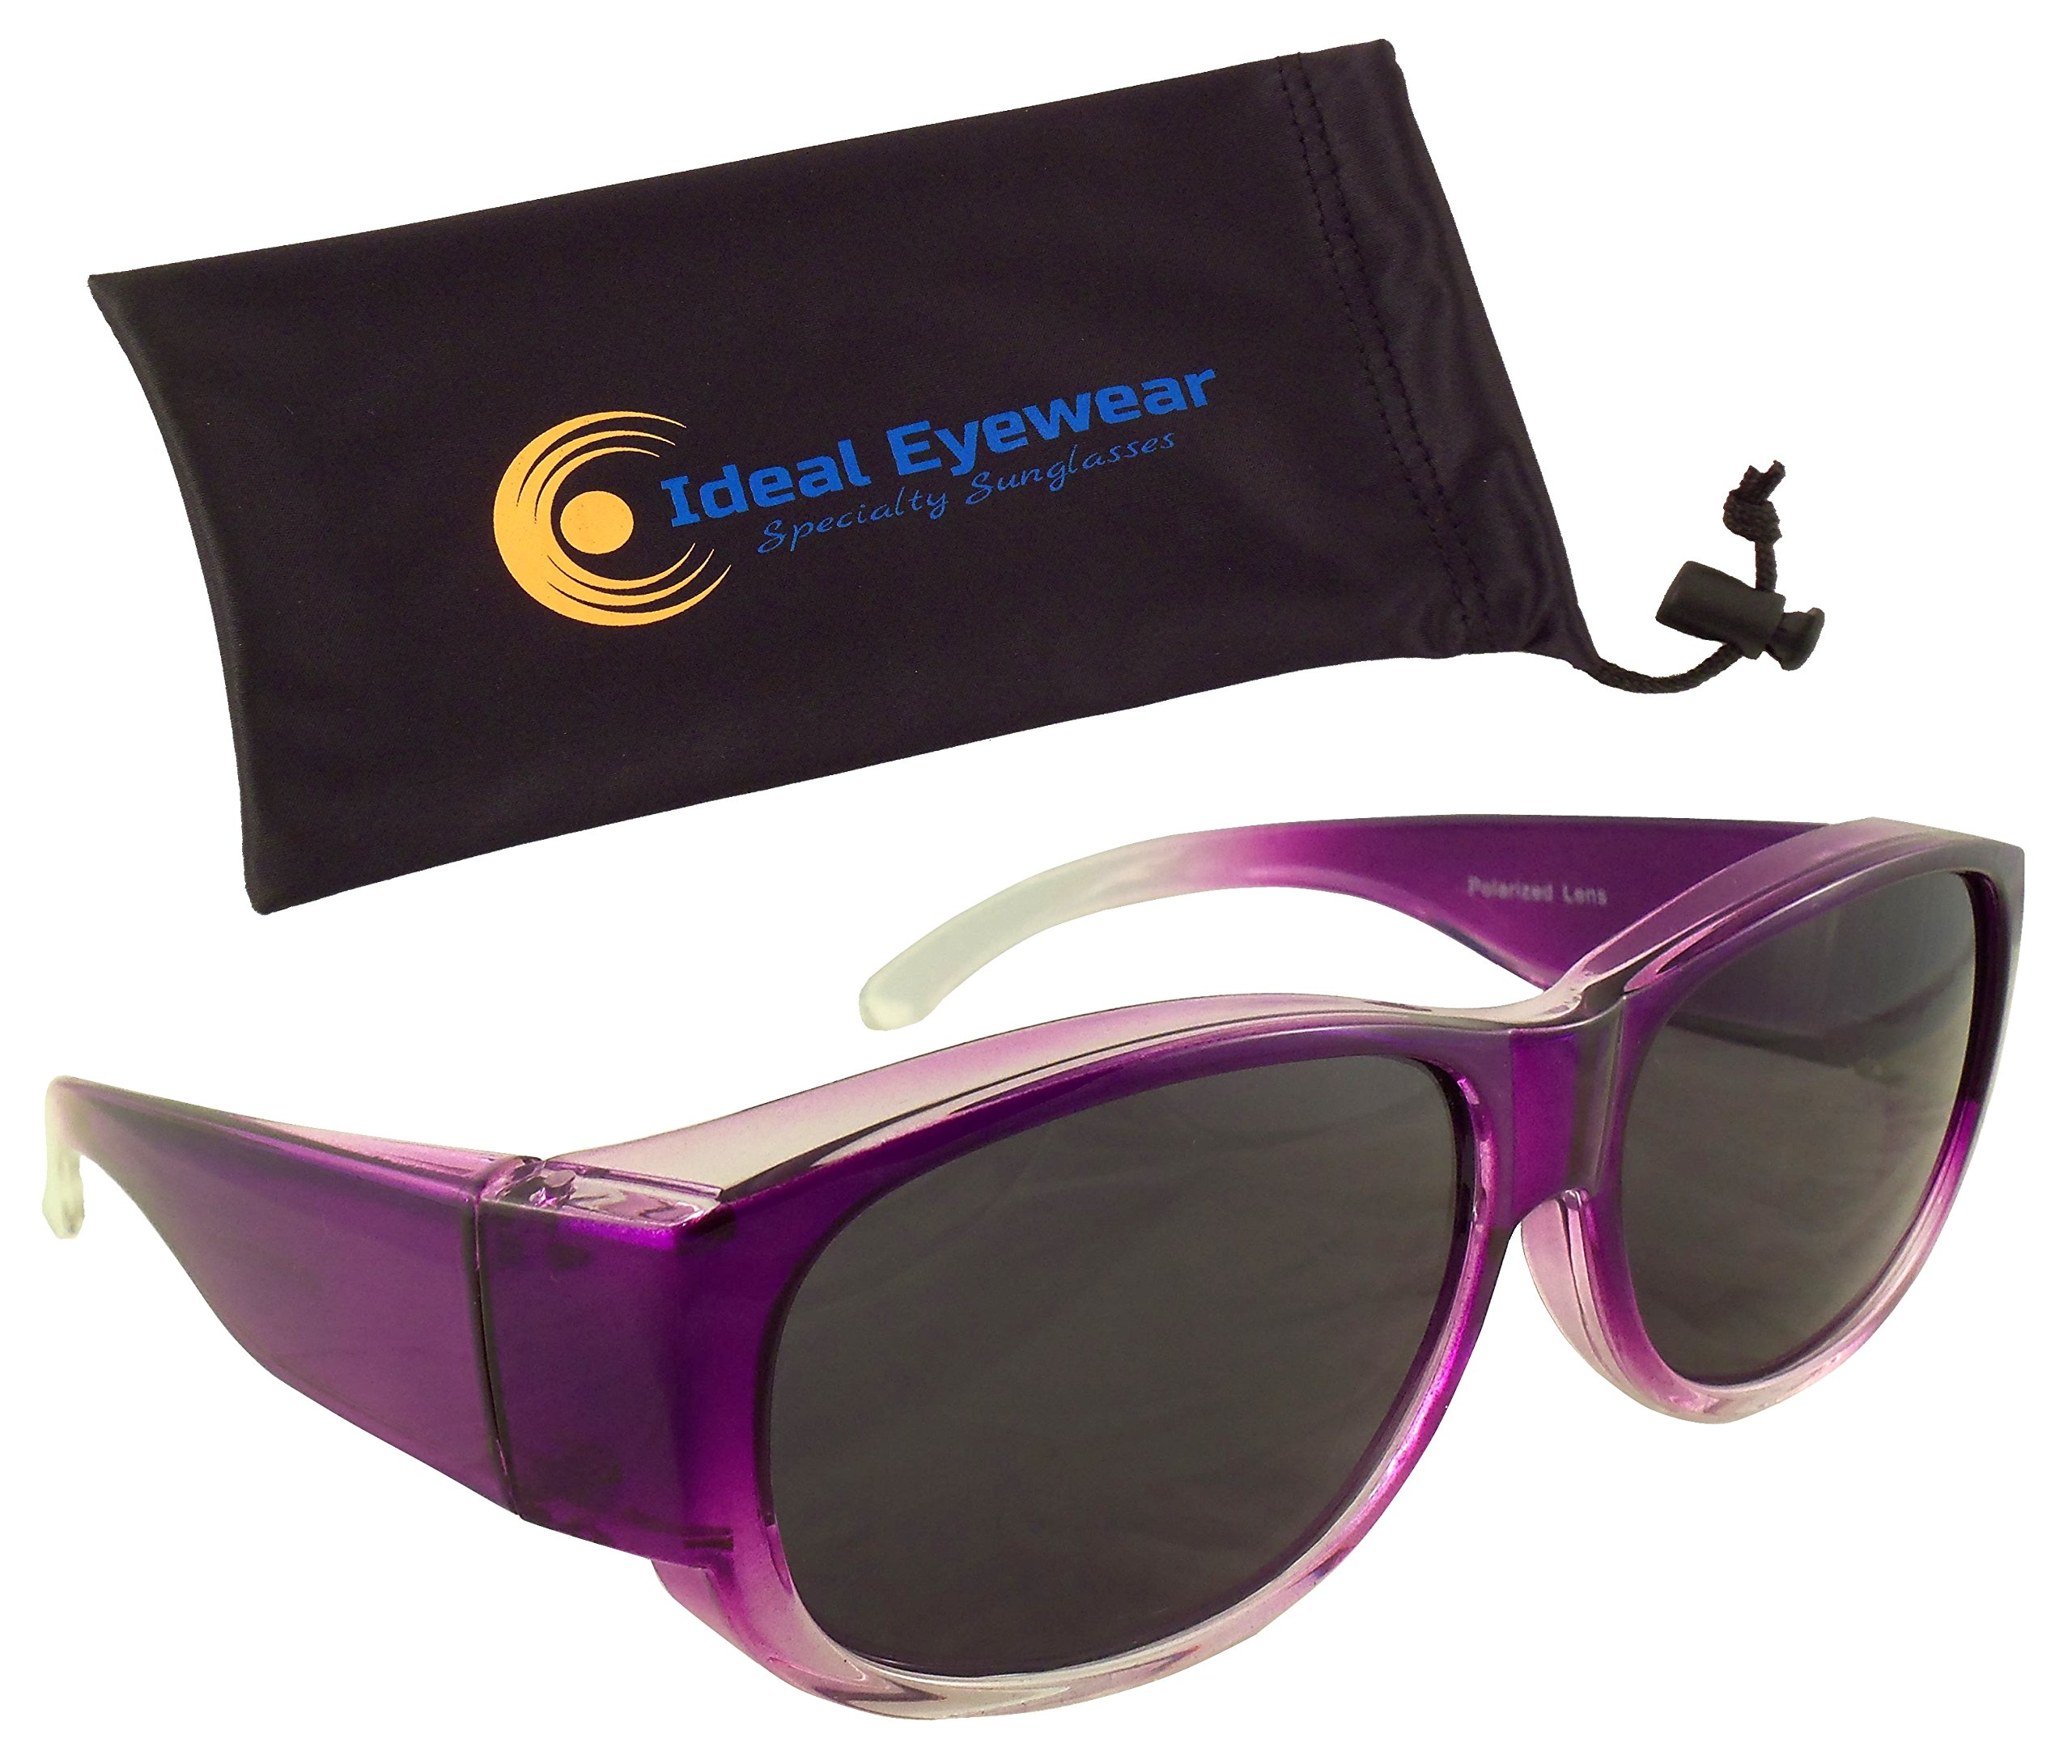 Womens Ombre Fit Over Sunglasses by Ideal Eyewear - Wear Over Prescription Glasses - Over Eyeglasses - Polarized Lenses - Light and Comfortable - Case Included (Purple with case, Polarized)